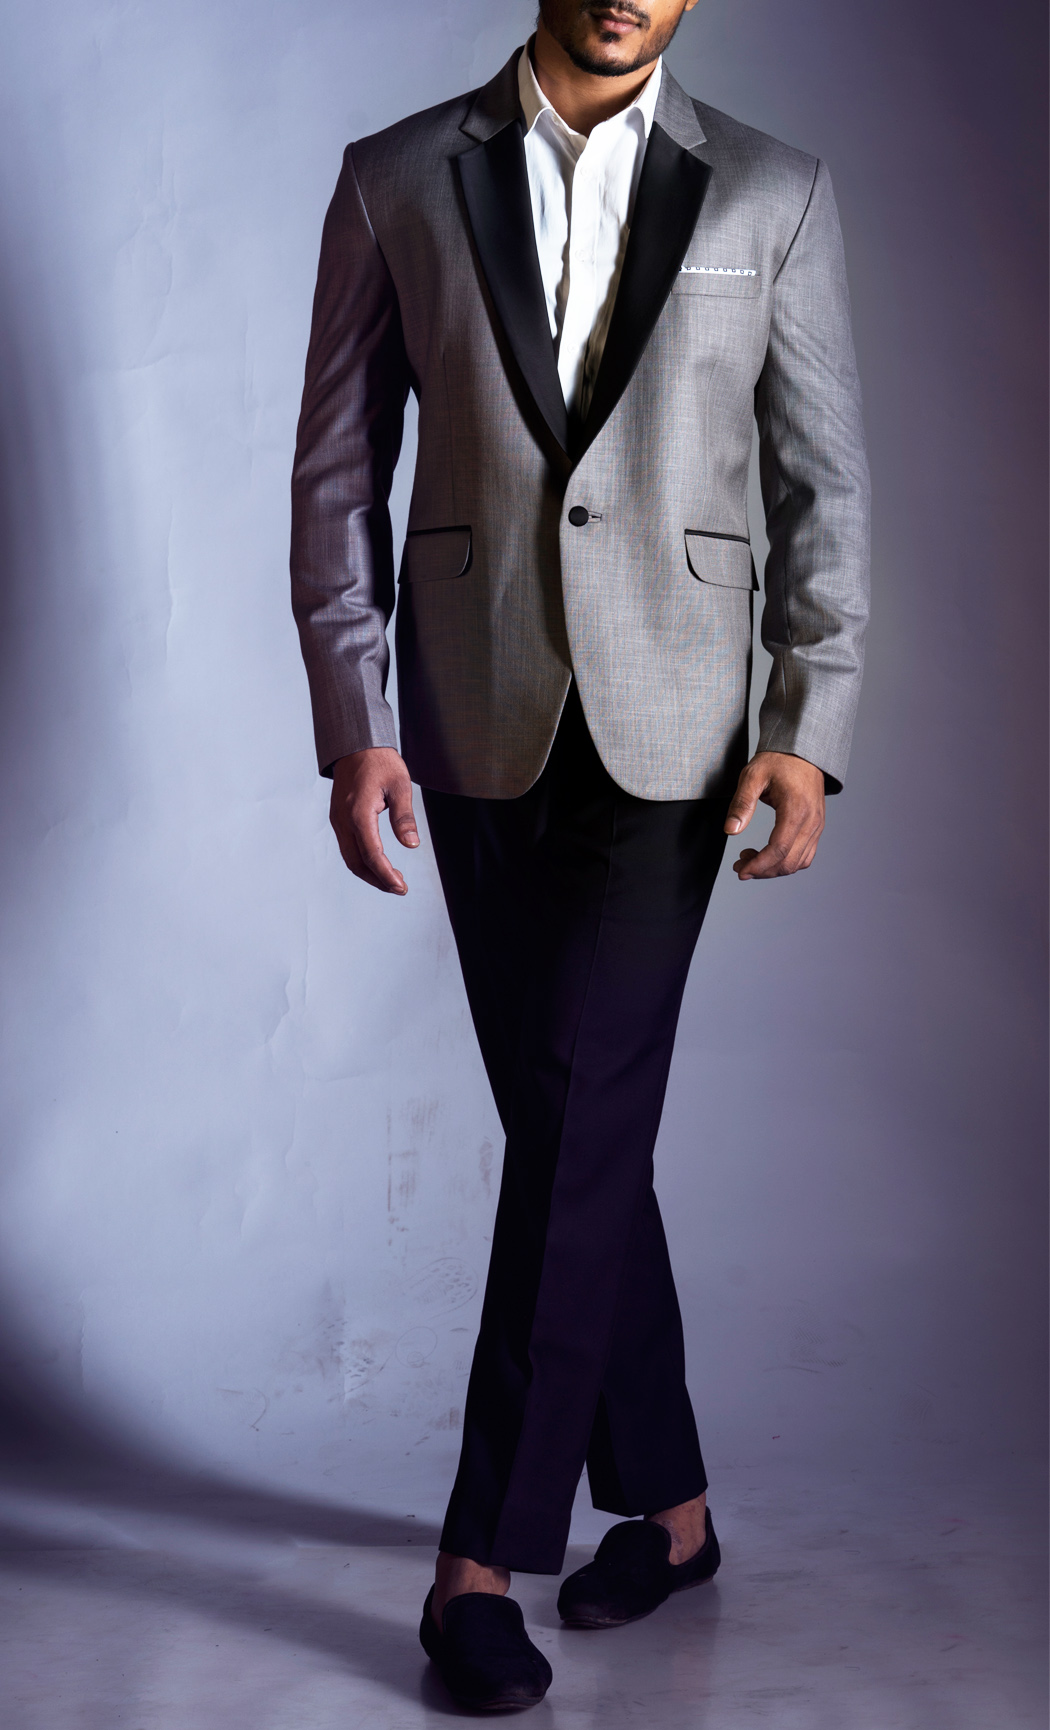 Slubbed Grey Blazer with a Black Lapel and Black Trousers